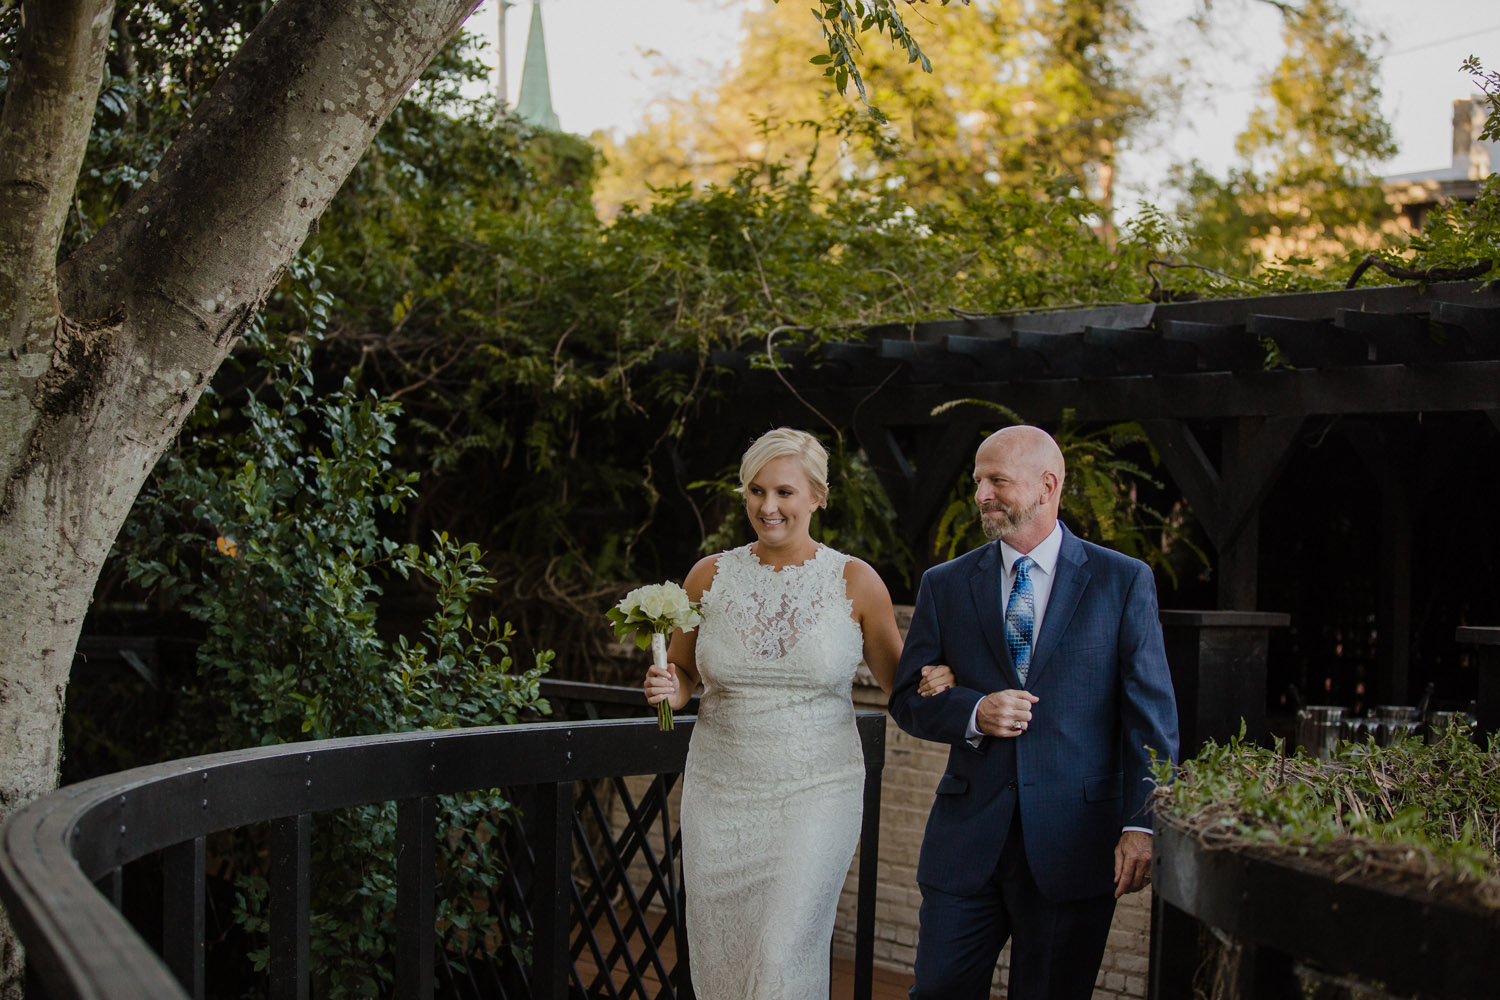 Atlanta Wedding Photographers Savannah Elopement Photographer Destination Photography_1027.jpg